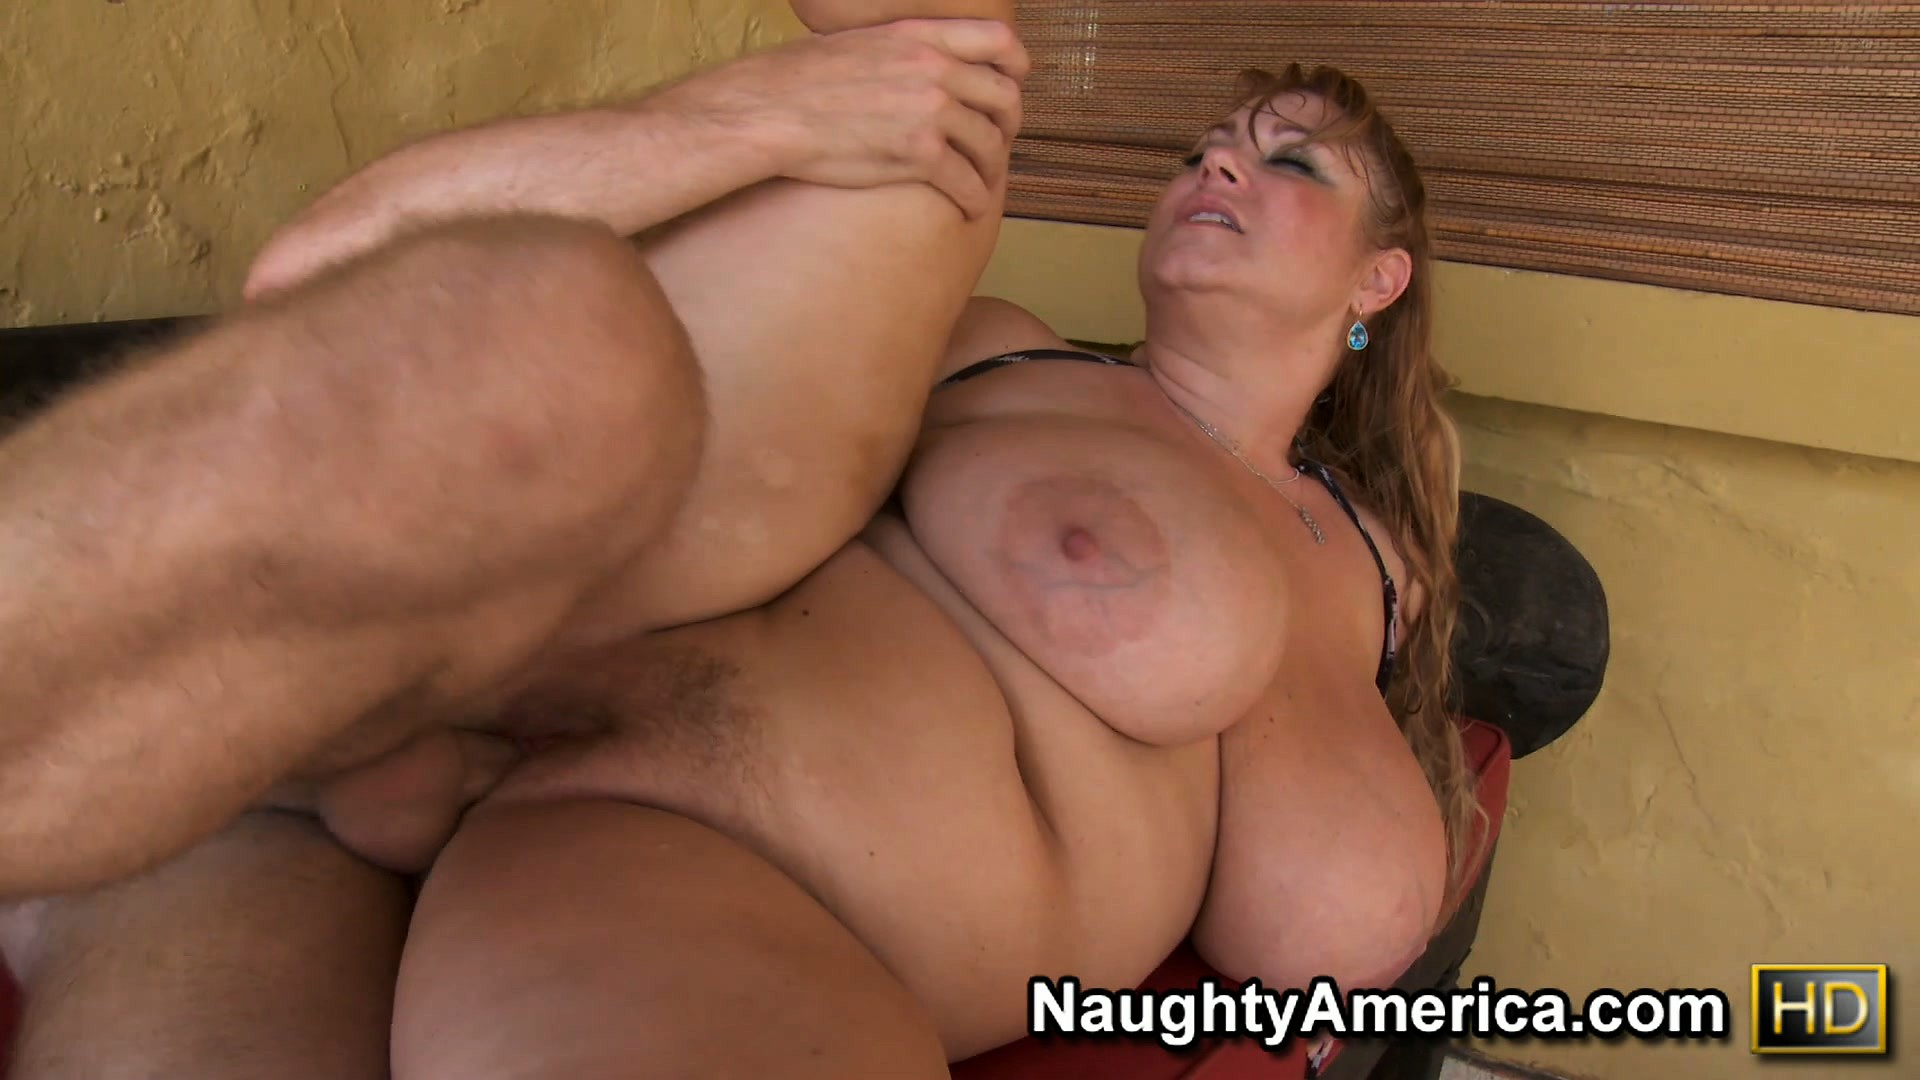 Plumper Whore - Download Plumper slut Samantha has huge hooters and a fat pussy getting  fucked from vivatube.com